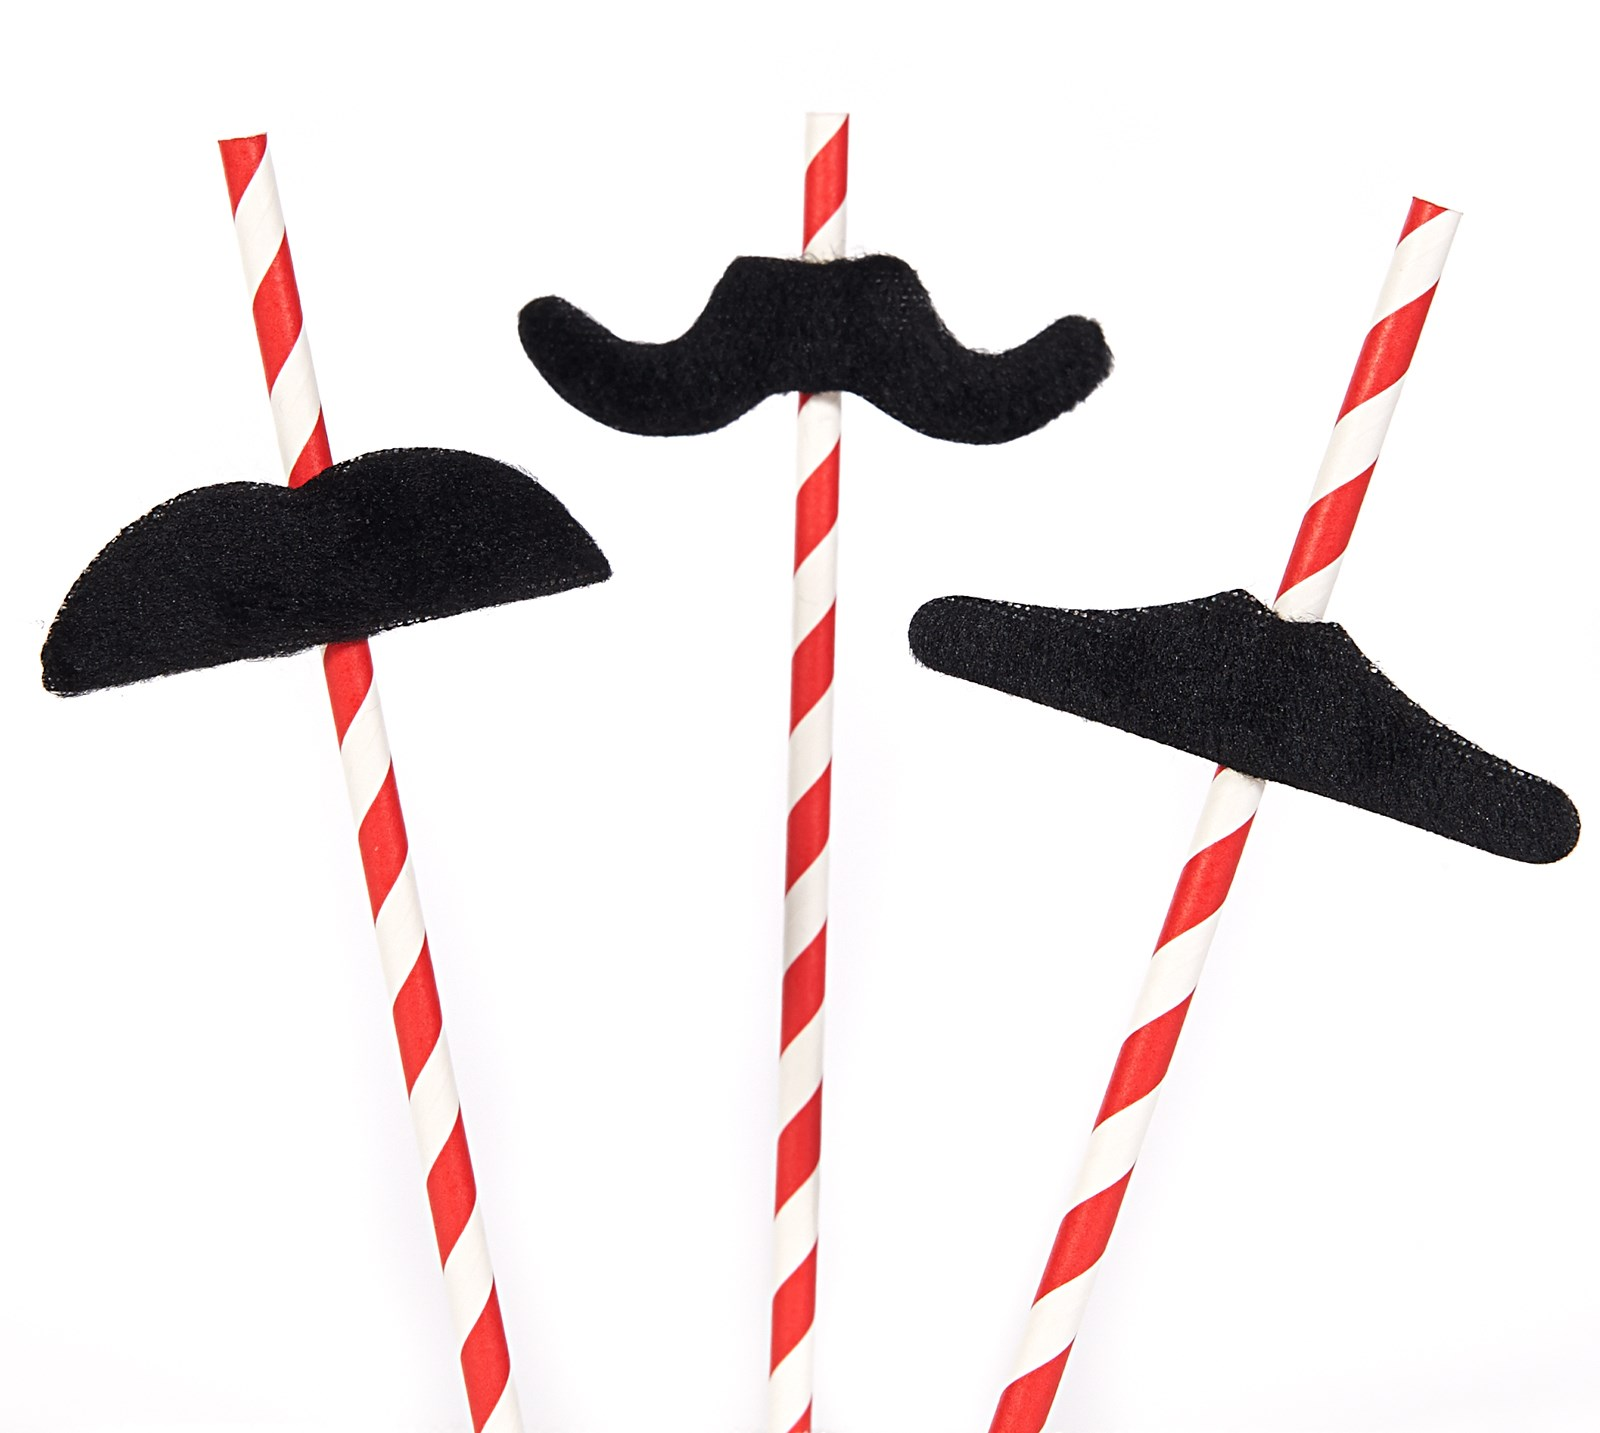 D.I.Y. Super Mario Party Mustache Straws - D.I.Y. Kit Materials - 1 Guests